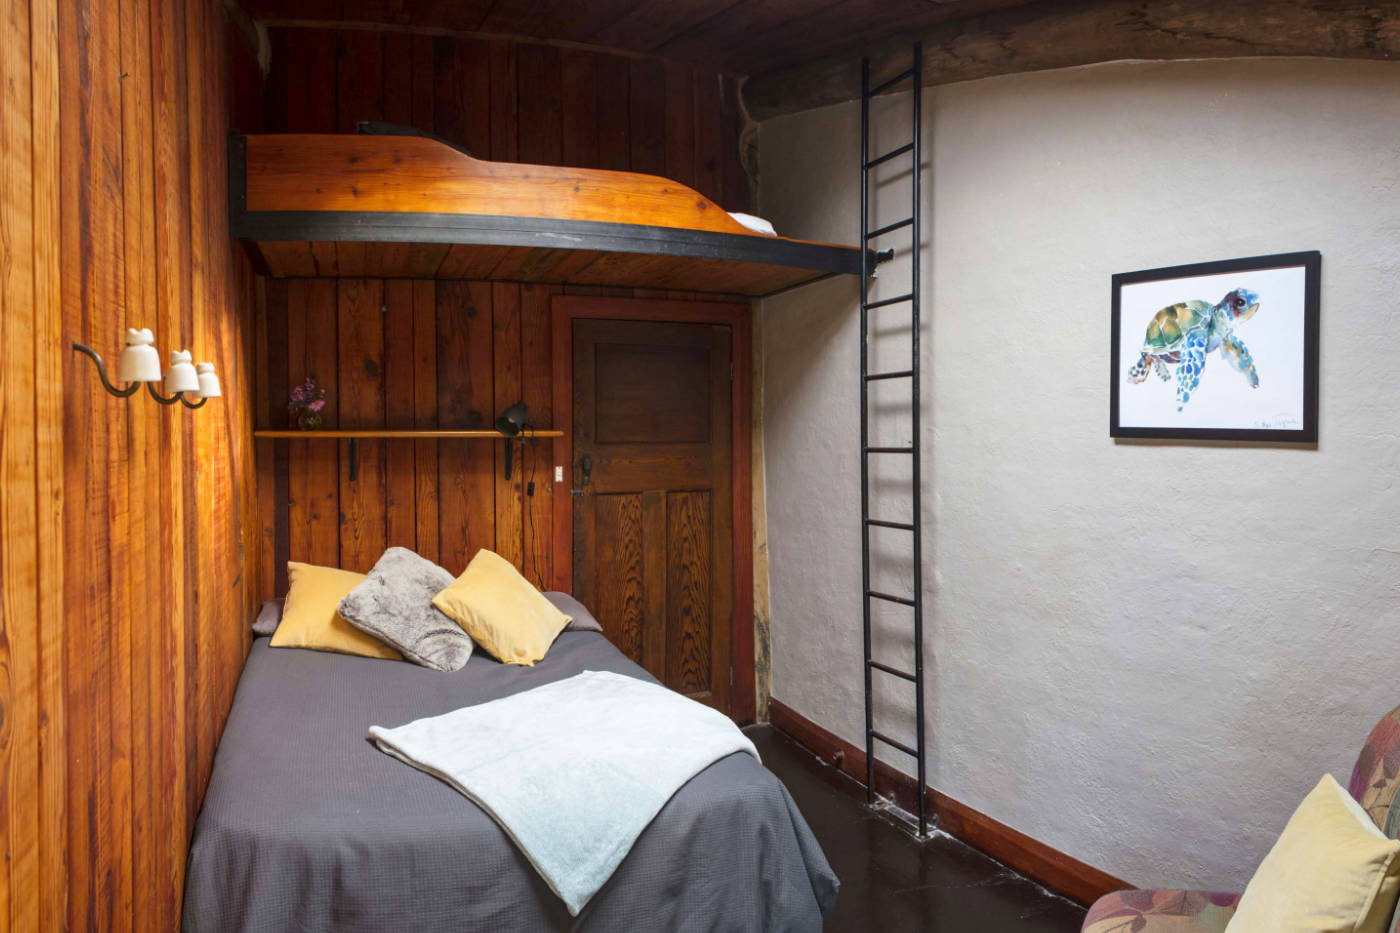 One of the bedrooms at Wirrega, with a bunk bed and ladder